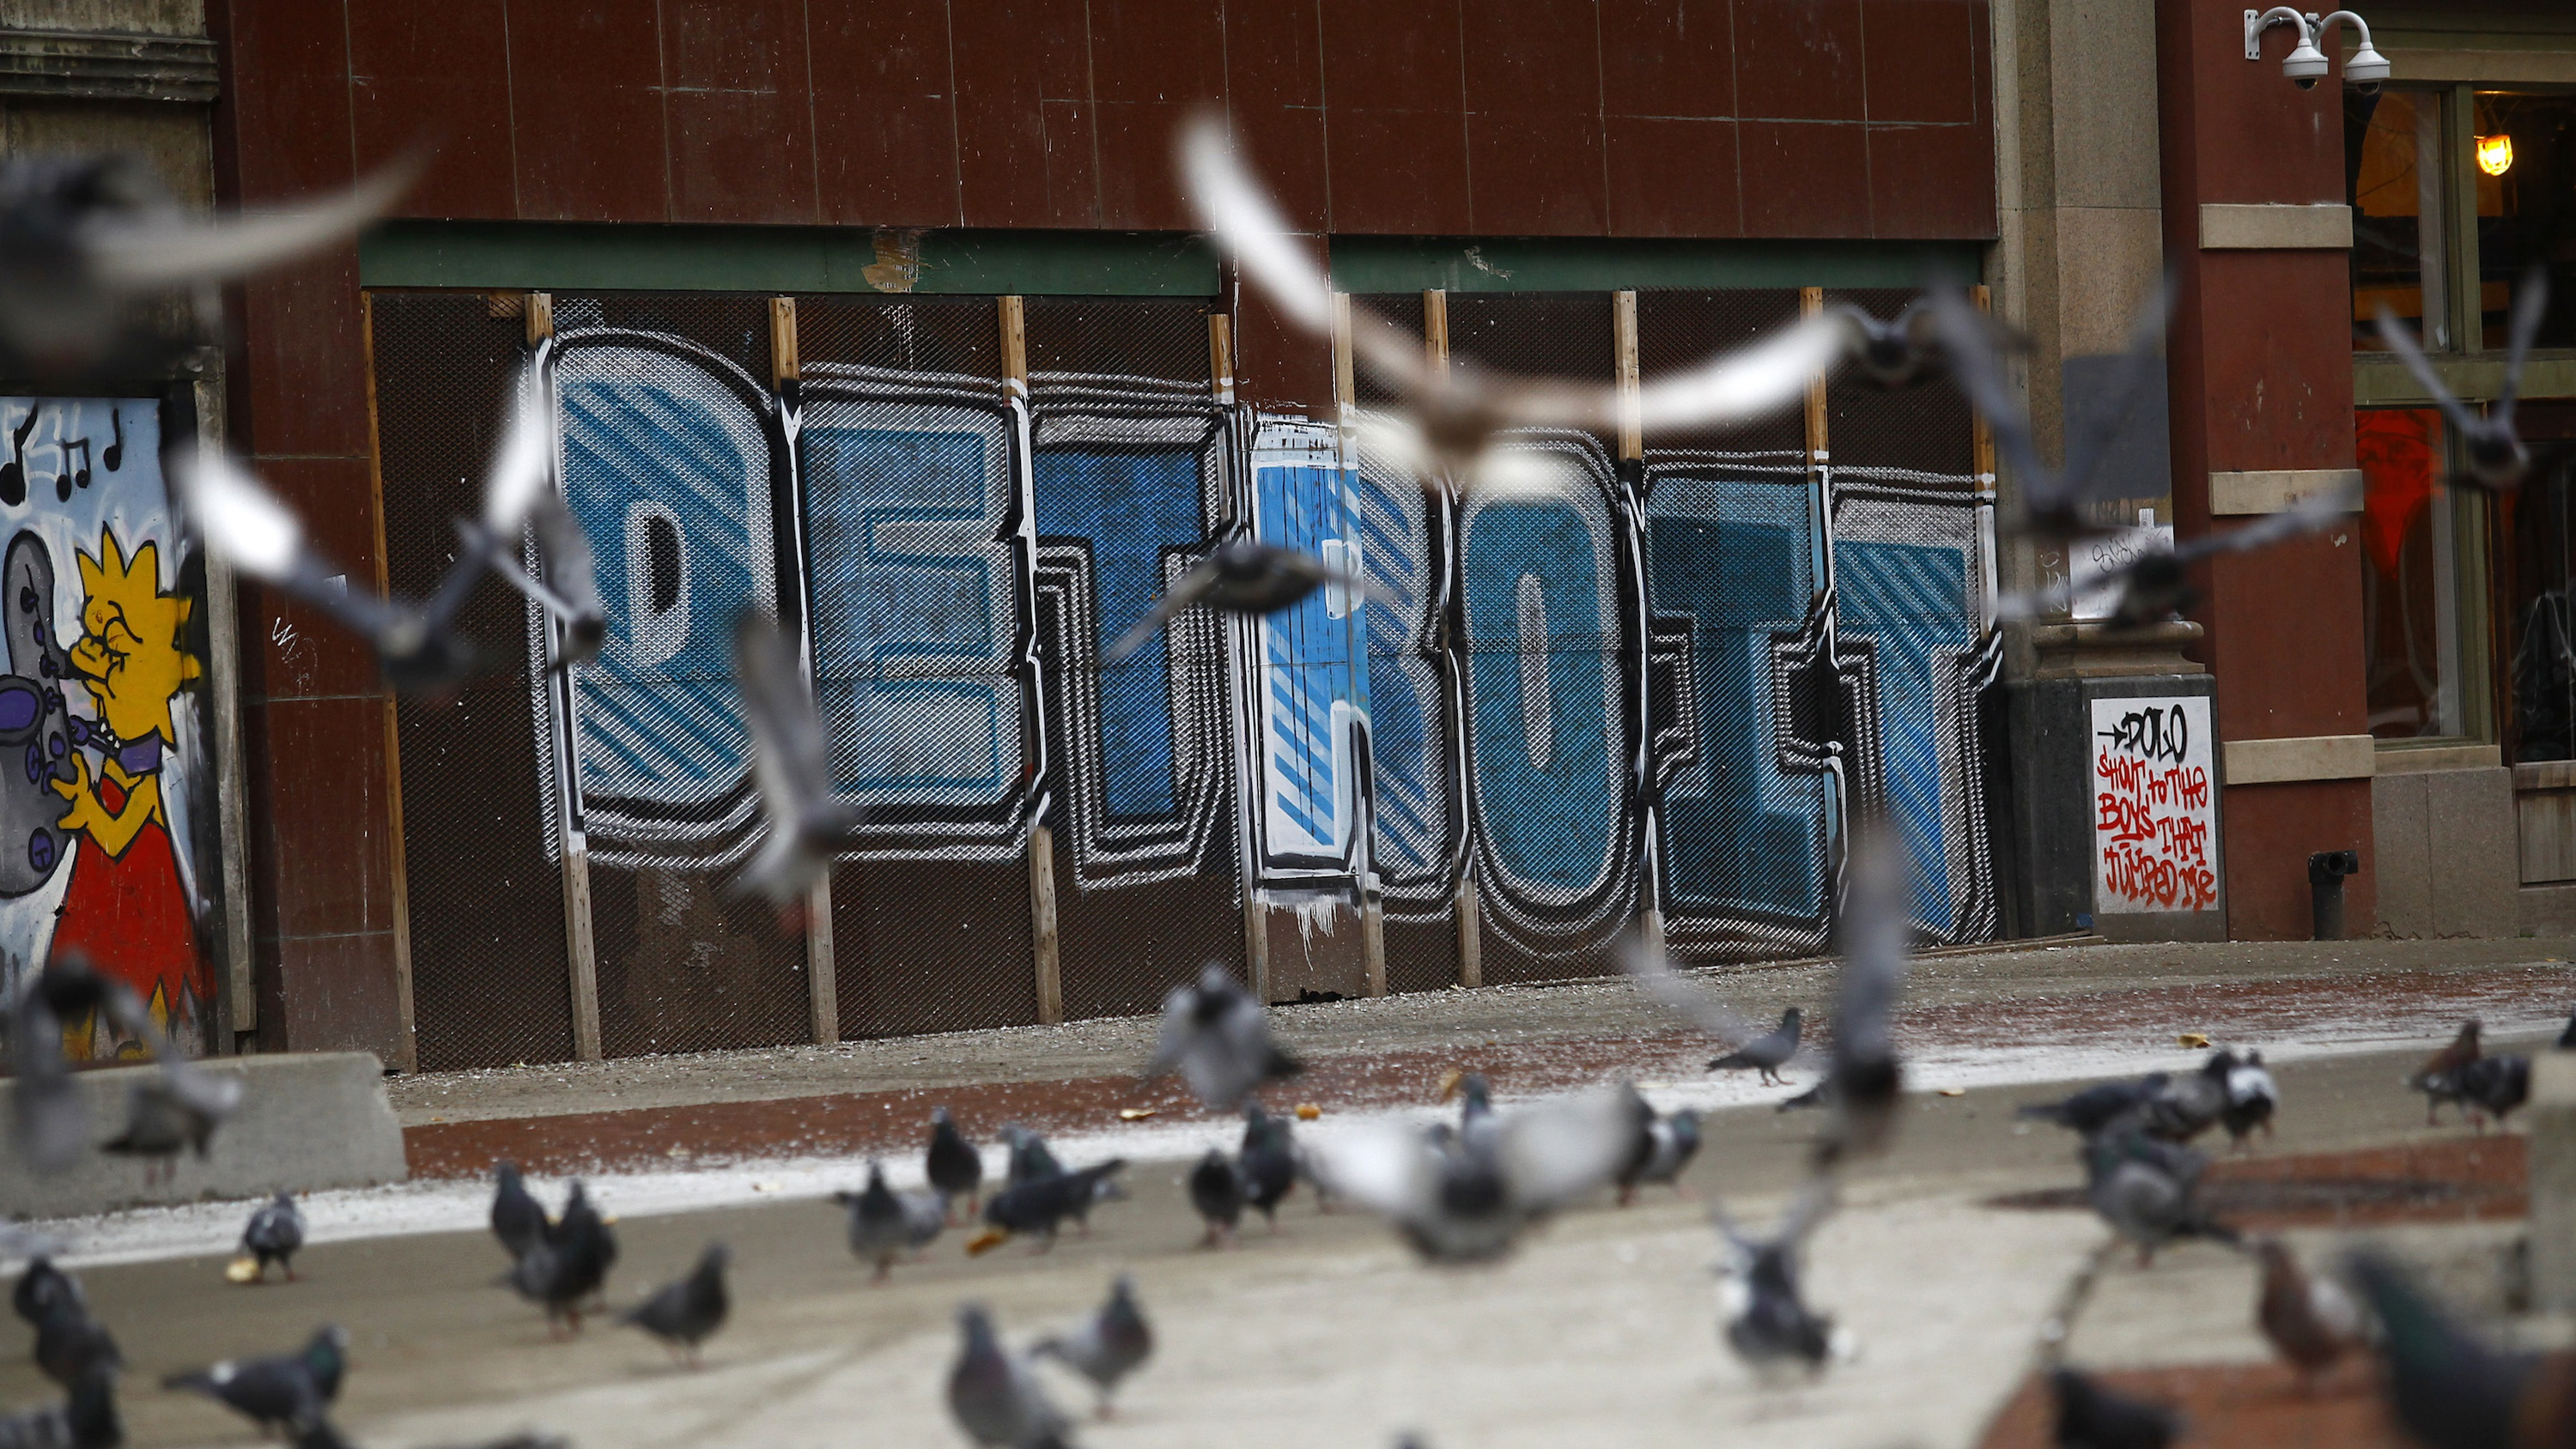 Will an influx of affluent, creative ex-Brooklynites further marginalize Detroit's poor?